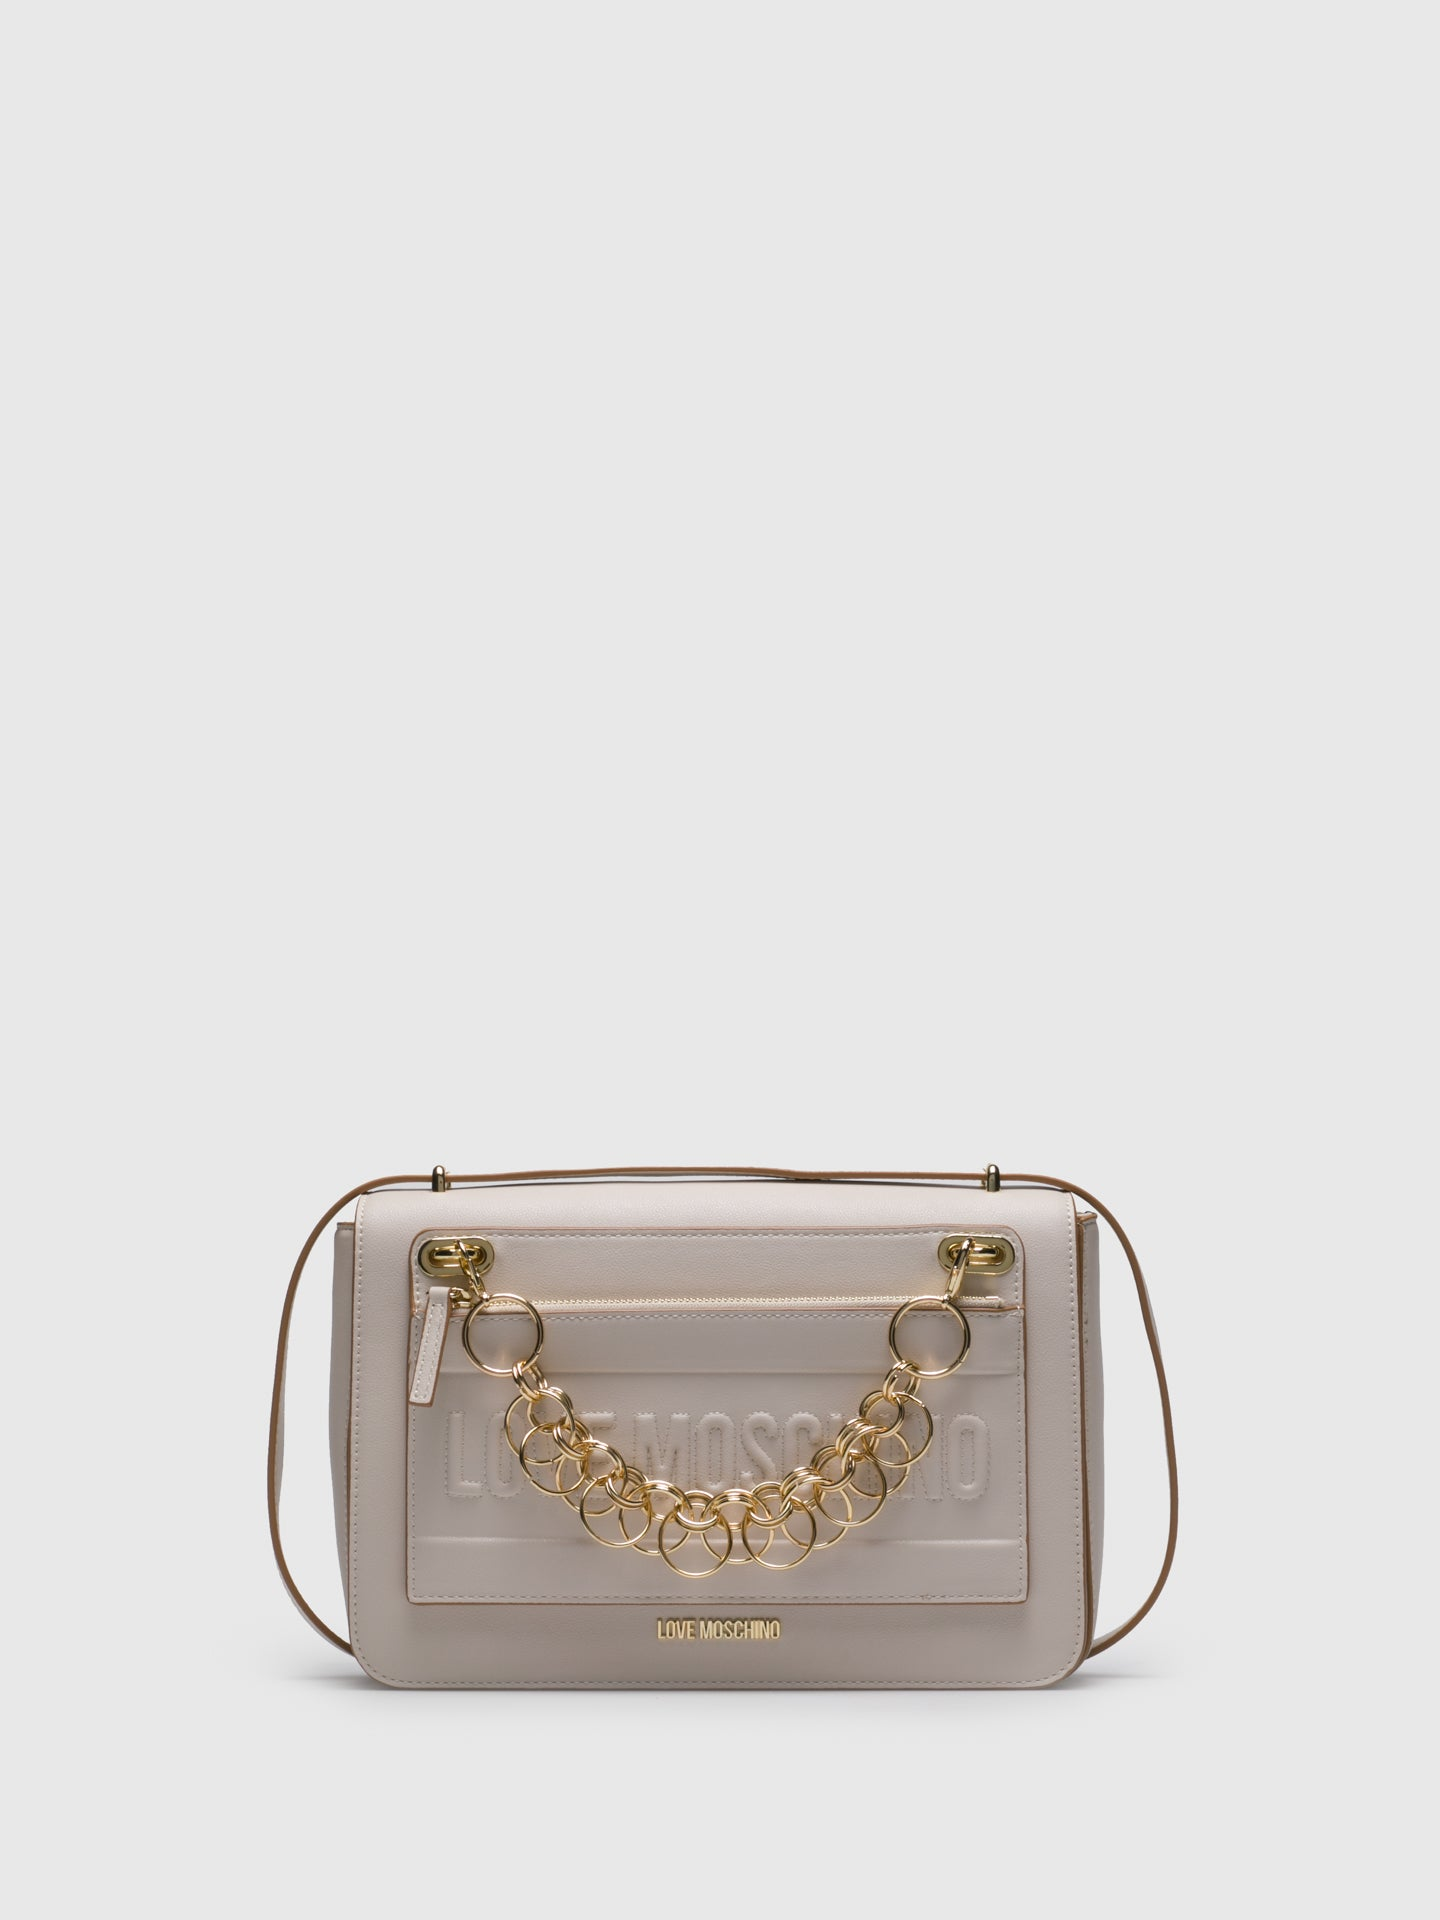 LOVE MOSCHINO Beige Crossbody Bag